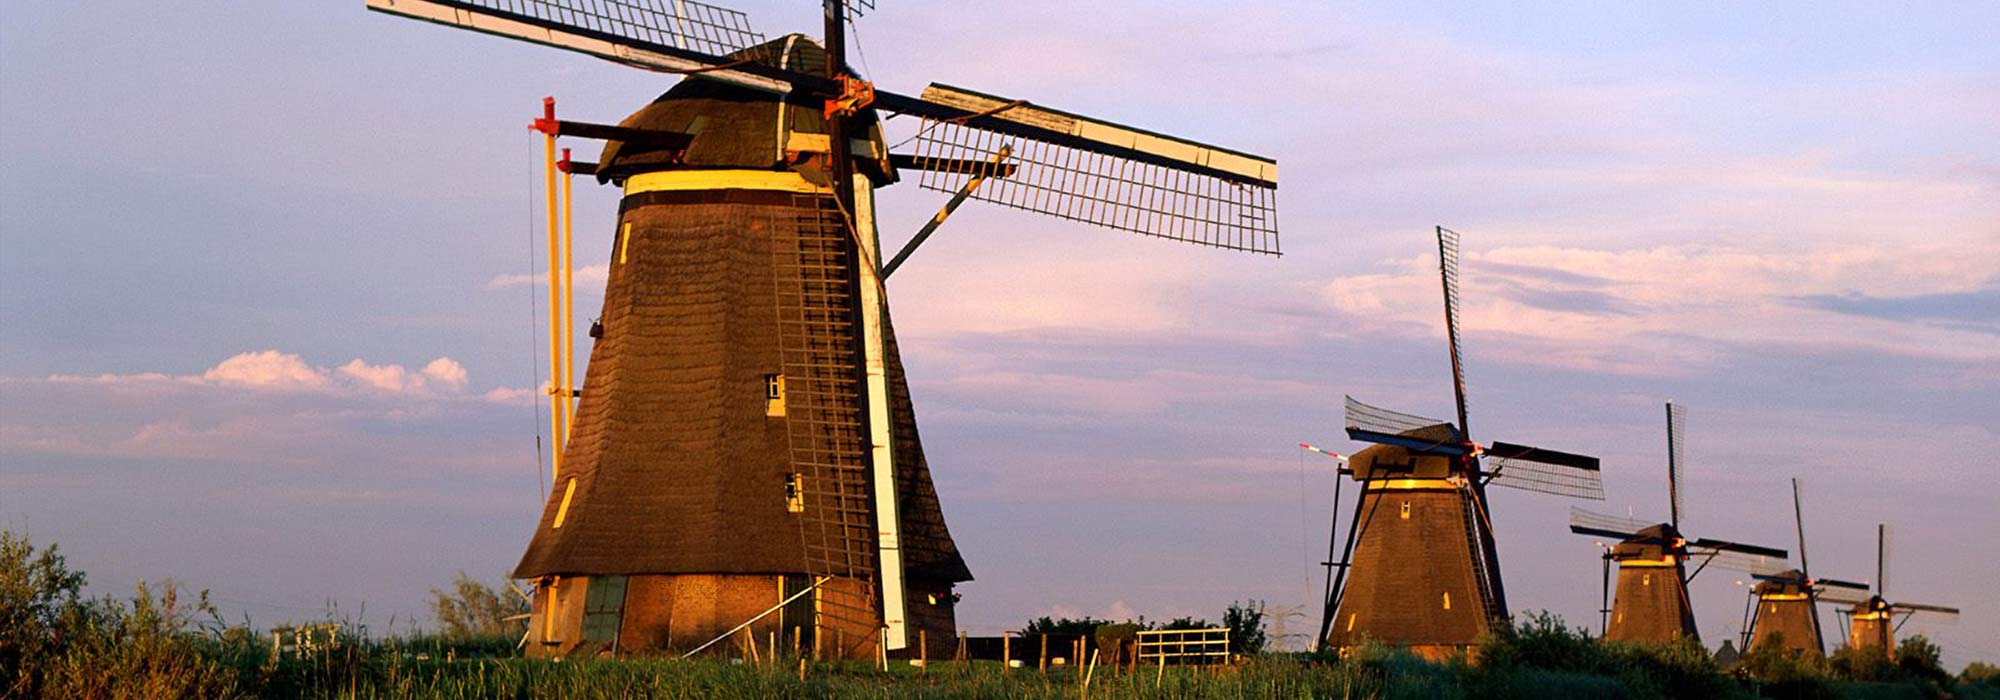 image of windmills in holland